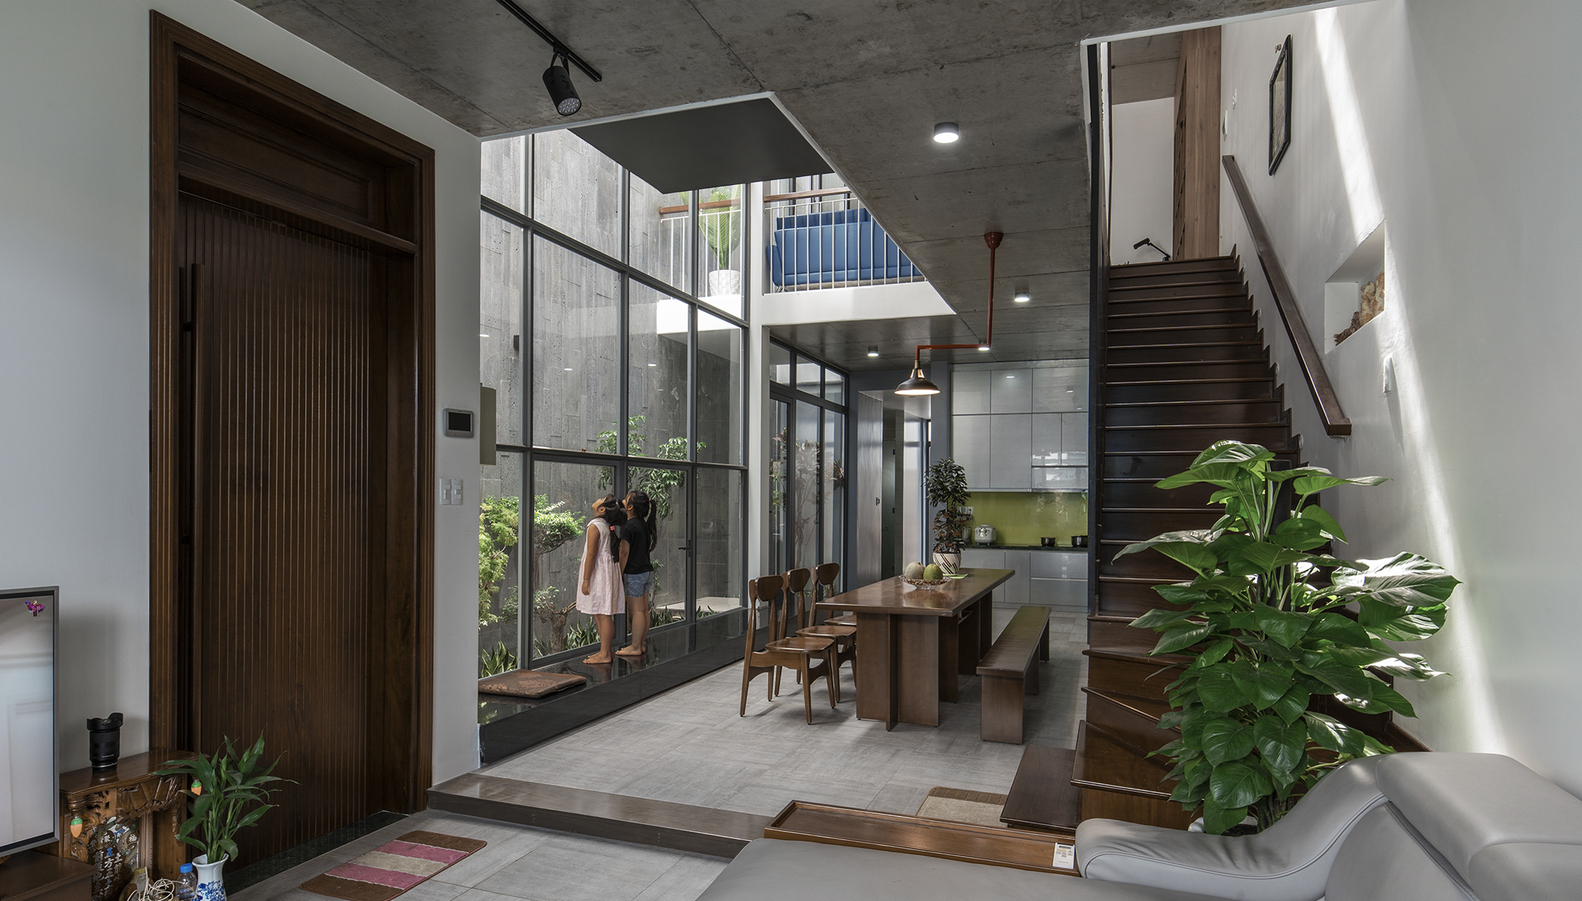 DD-house-hoang-vu-architecture-7